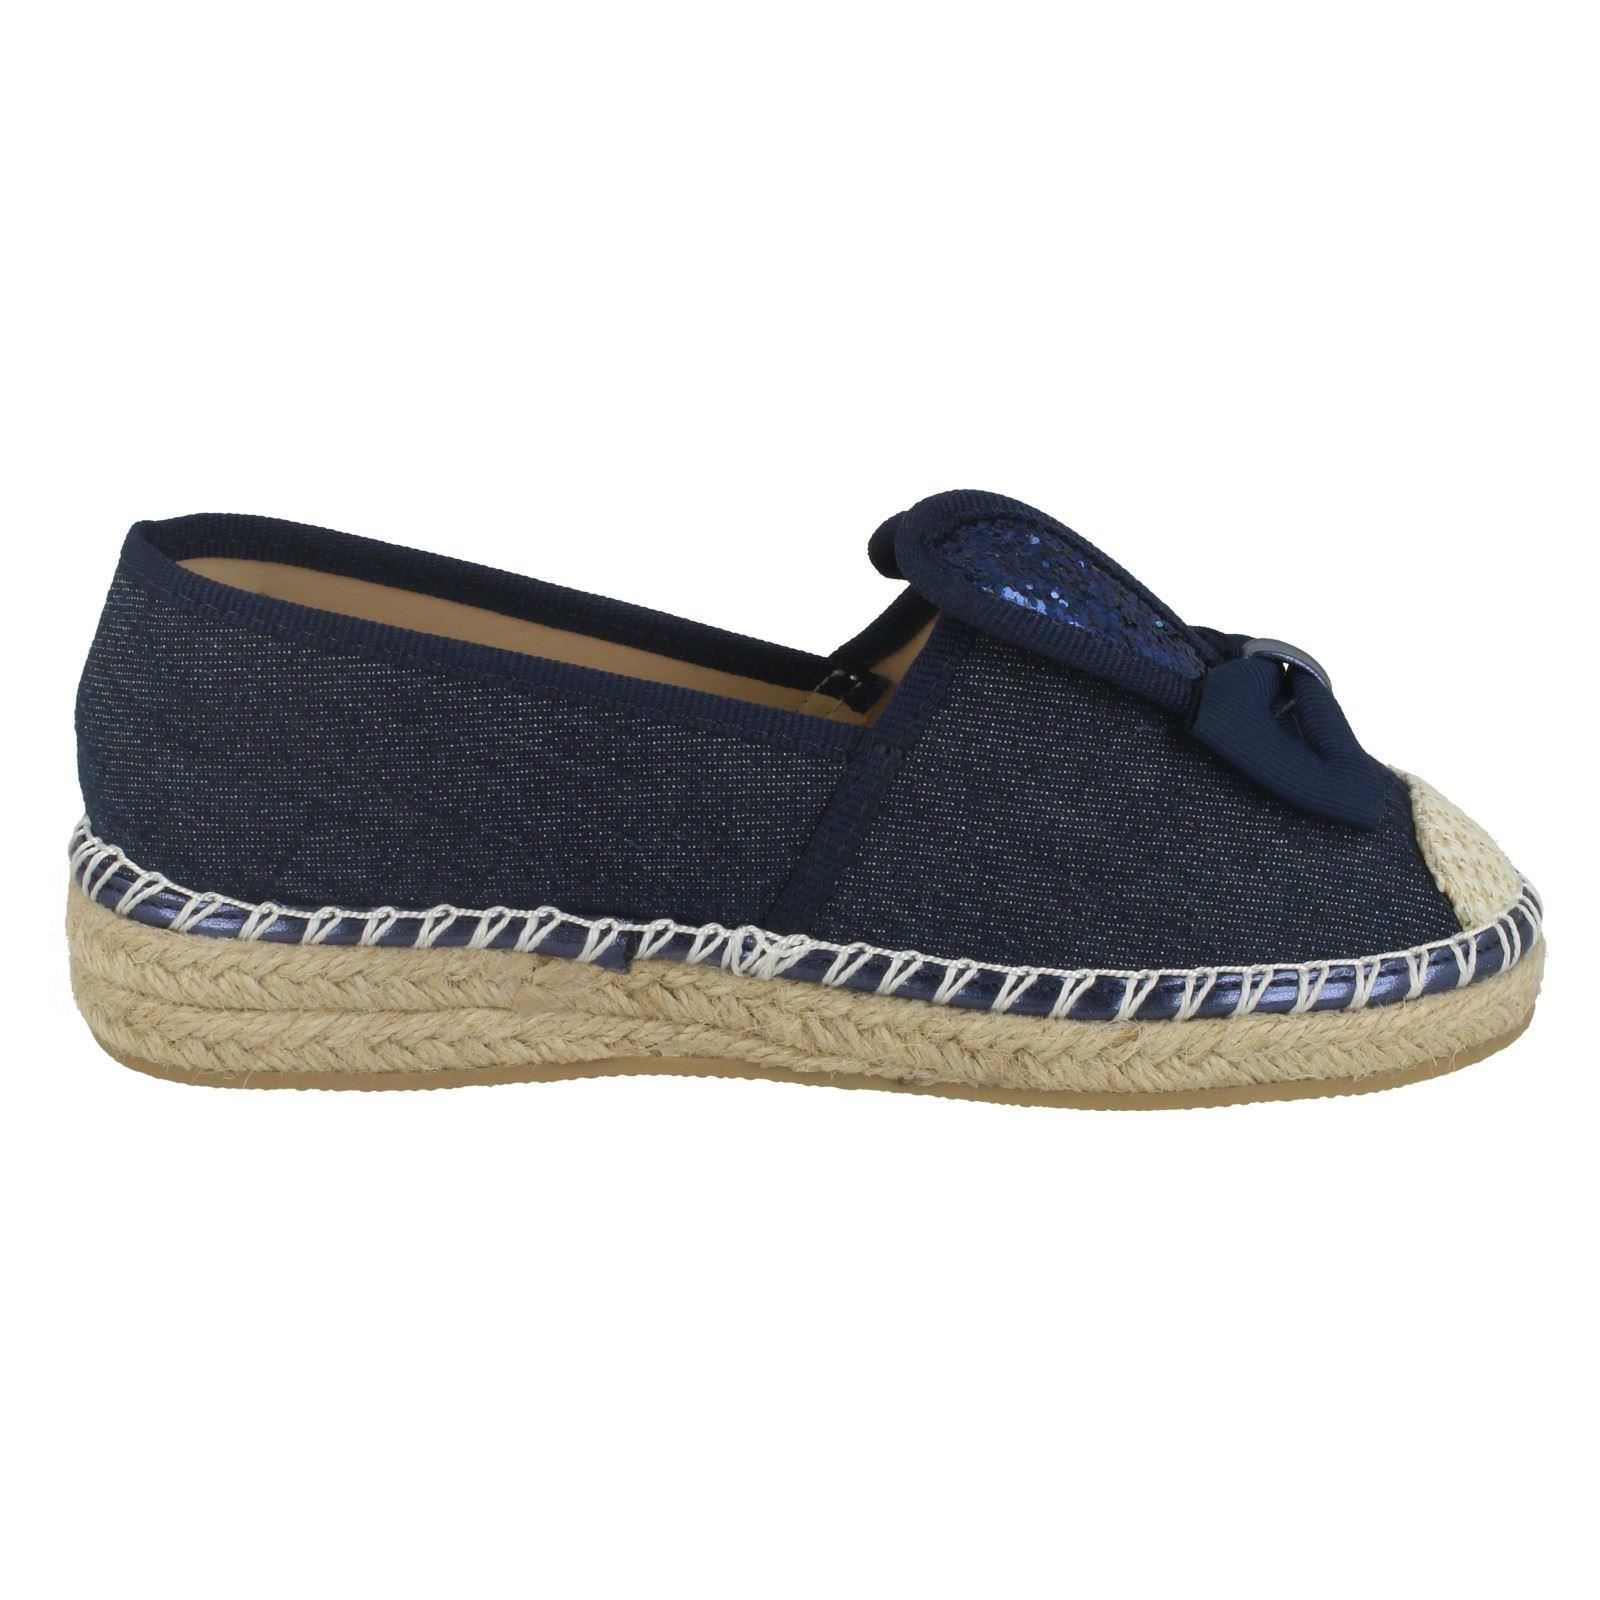 Girls Spot On Bunny Ears Canvas Shoes H2417